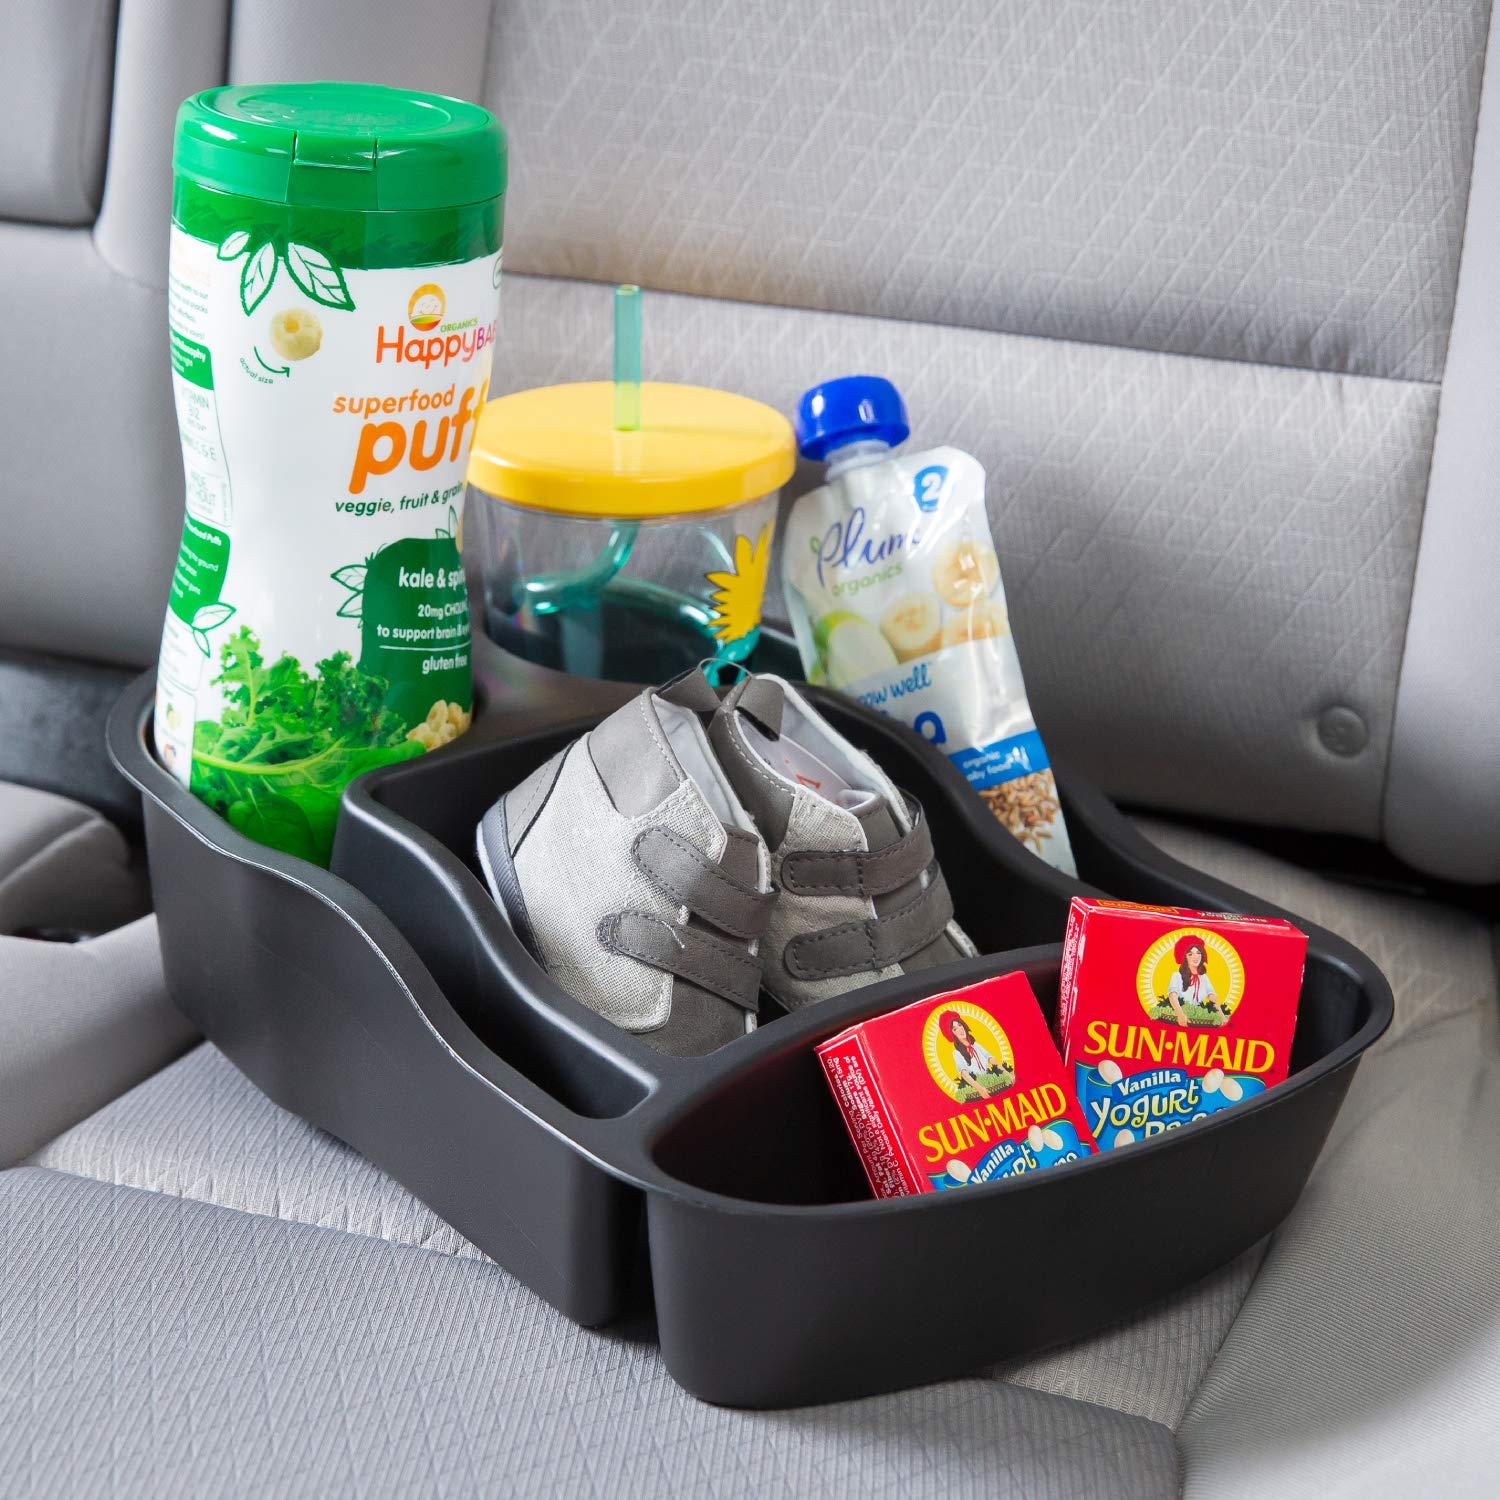 Rubbermaid 3371-00 Automotive Portable Tote Bin Organizer: Passenger Seat/Car Cargo Area Storage Caddy with Leakproof Bottom, Smal by Rubbermaid